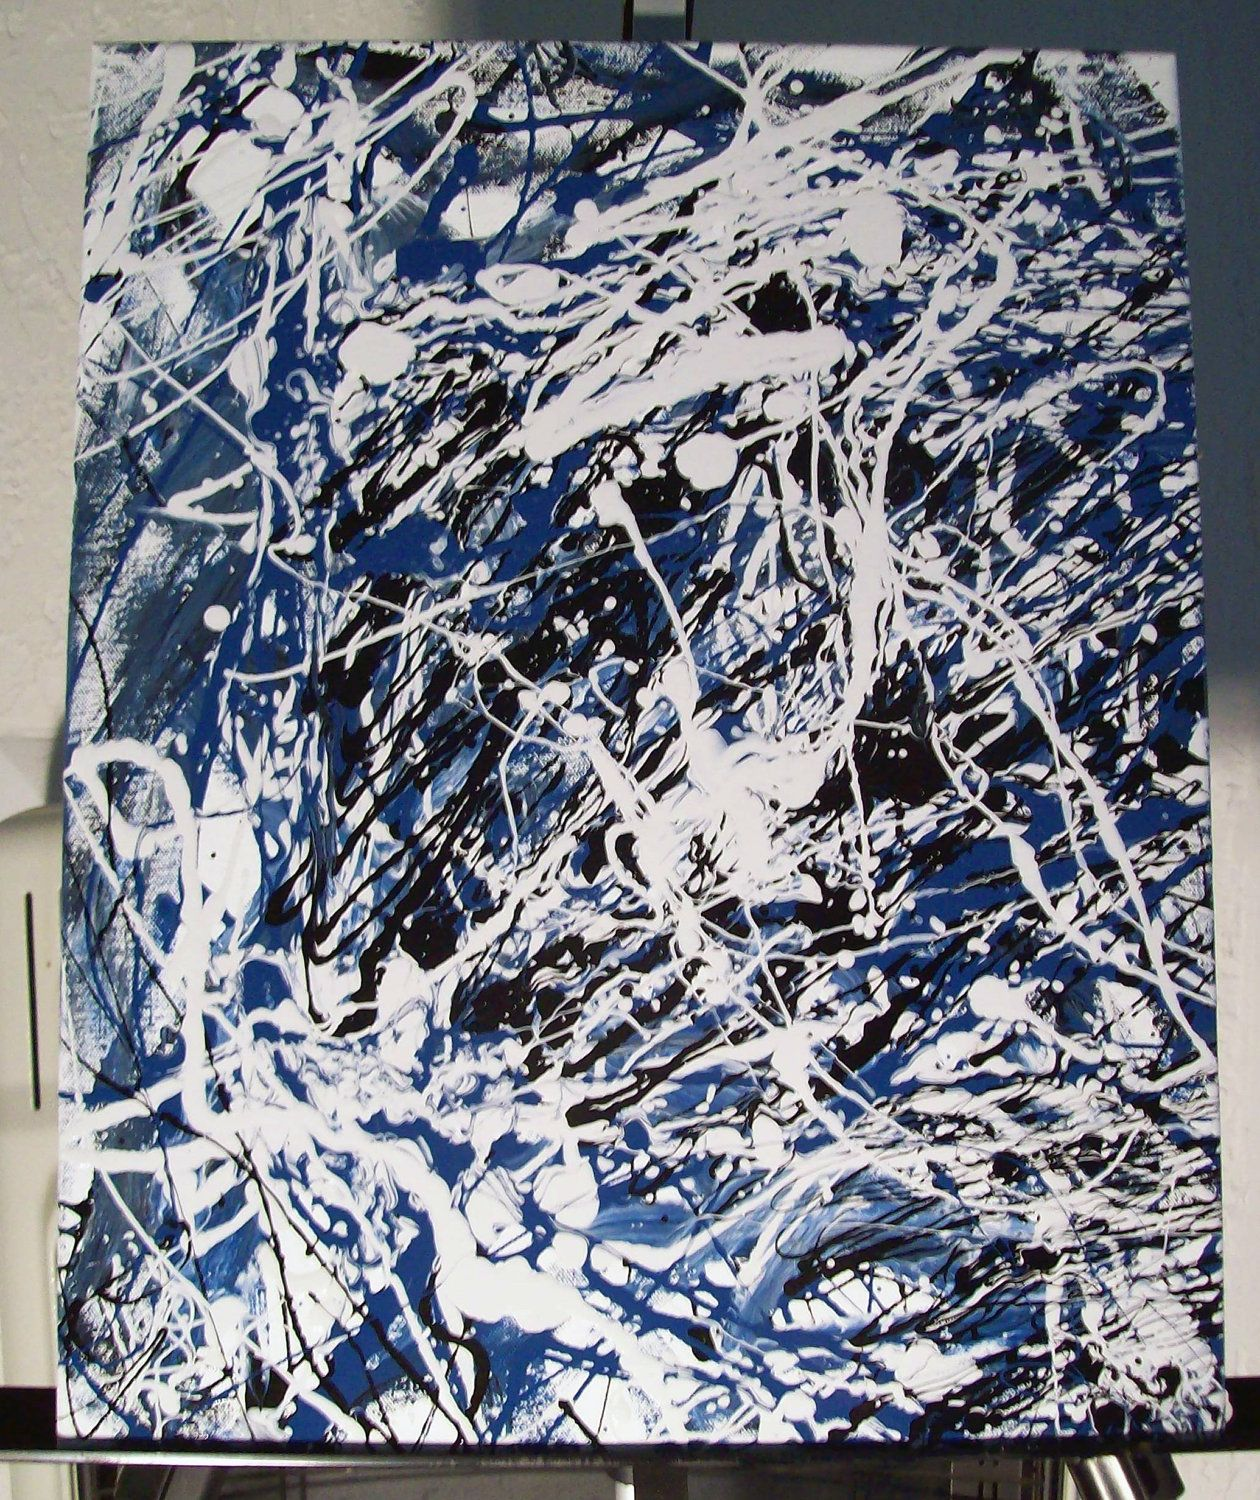 white light 1954 by jackson pollock jackson pollock painted white abstract expressionism original painting on canvas drip painting jackson pollock style ice 16x20 by matthew hatley